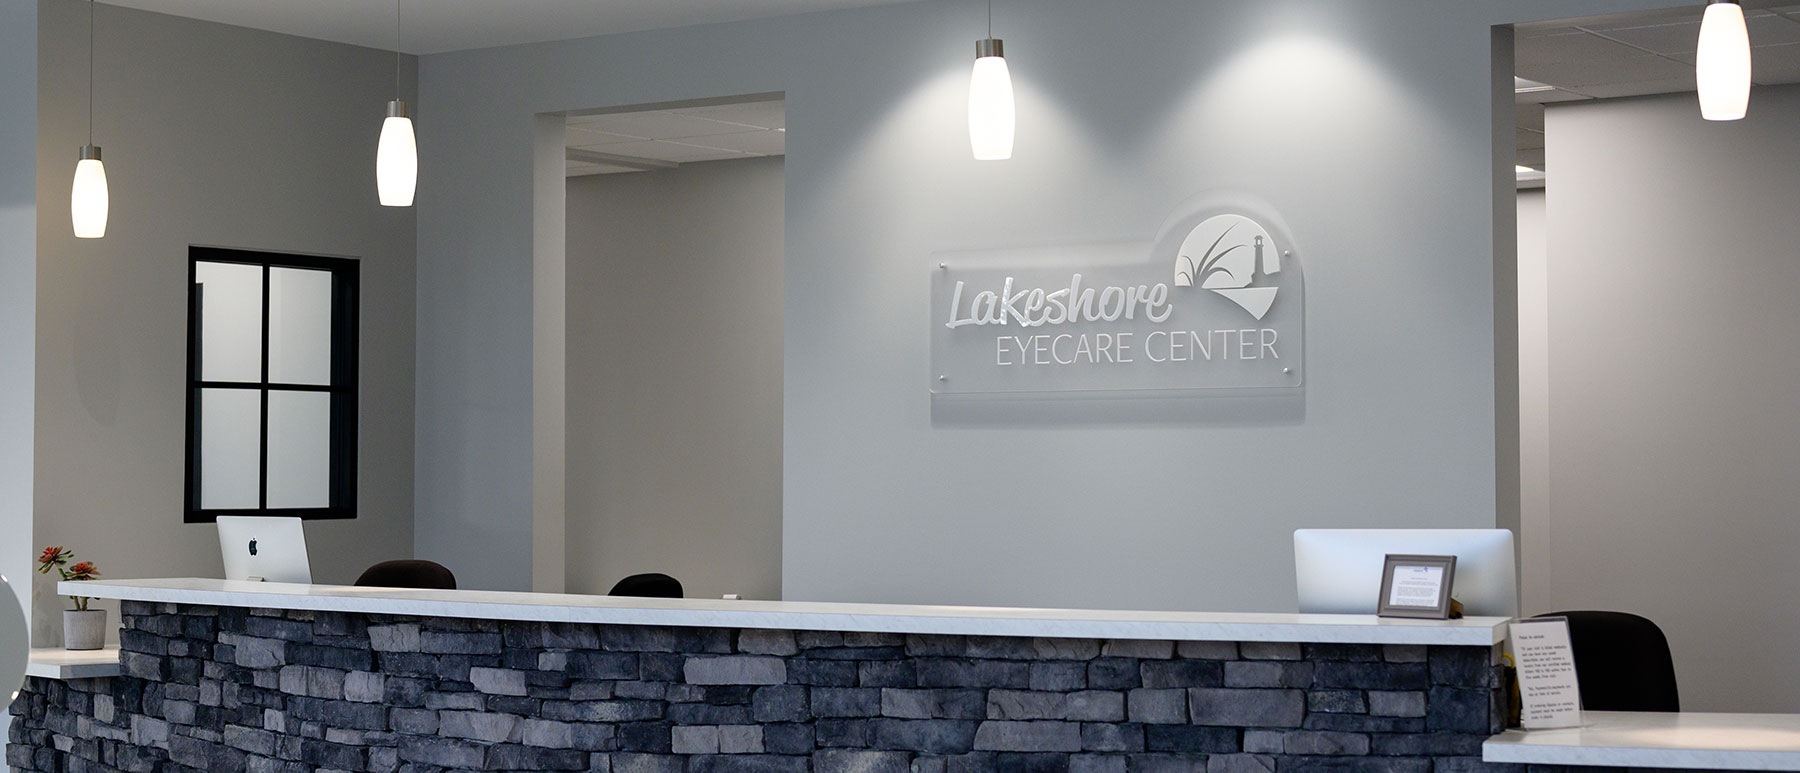 front desk at Lakeshore Eyecare Center